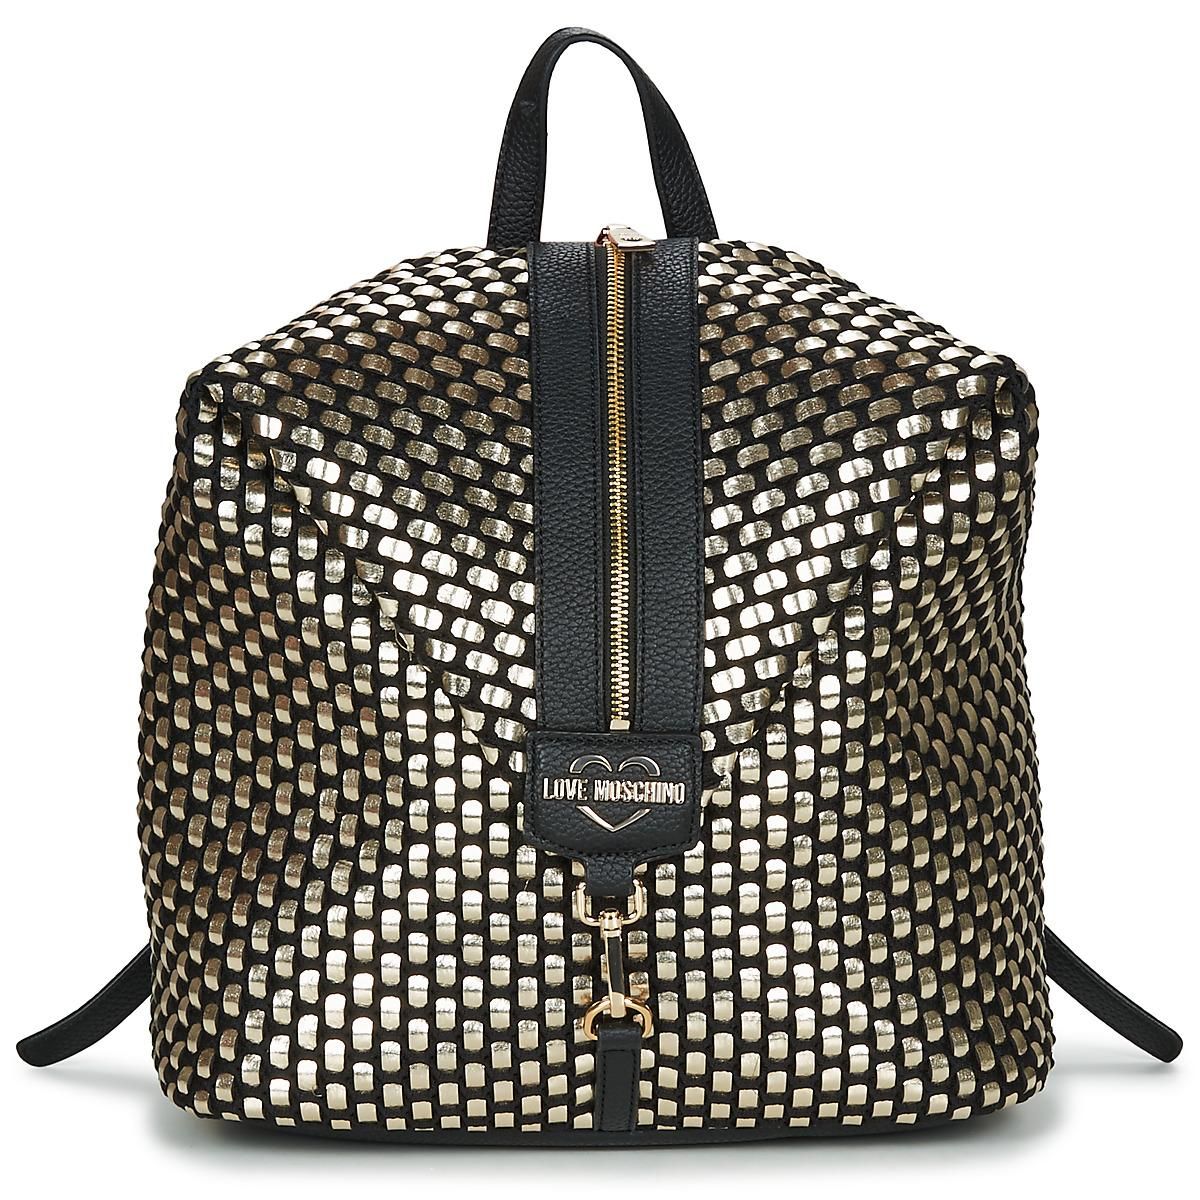 32346703c1 Love Moschino Jc4294pp07 Backpack in Metallic - Lyst